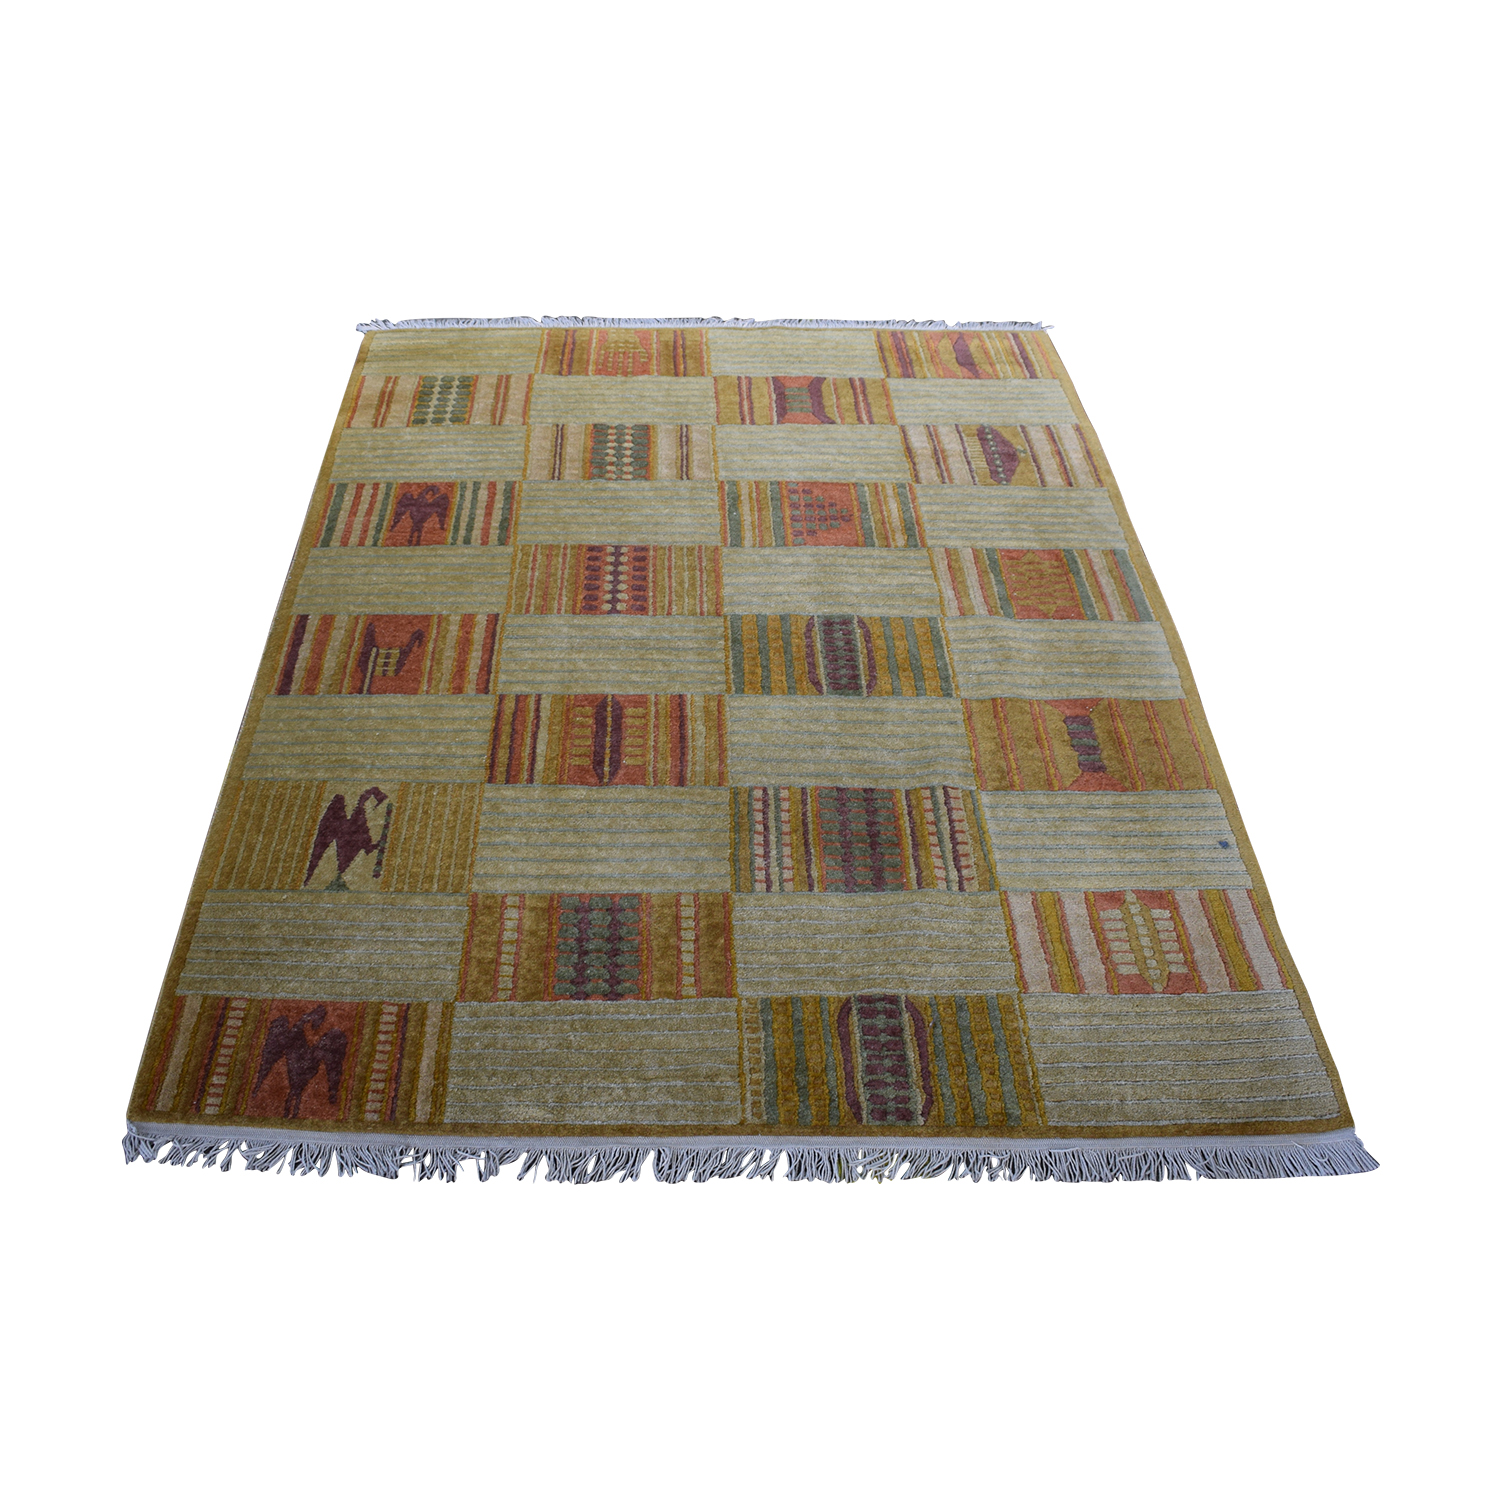 ABC Carpet & Home ABC Carpet & Home Hand-Knotted Wool Rug Rugs